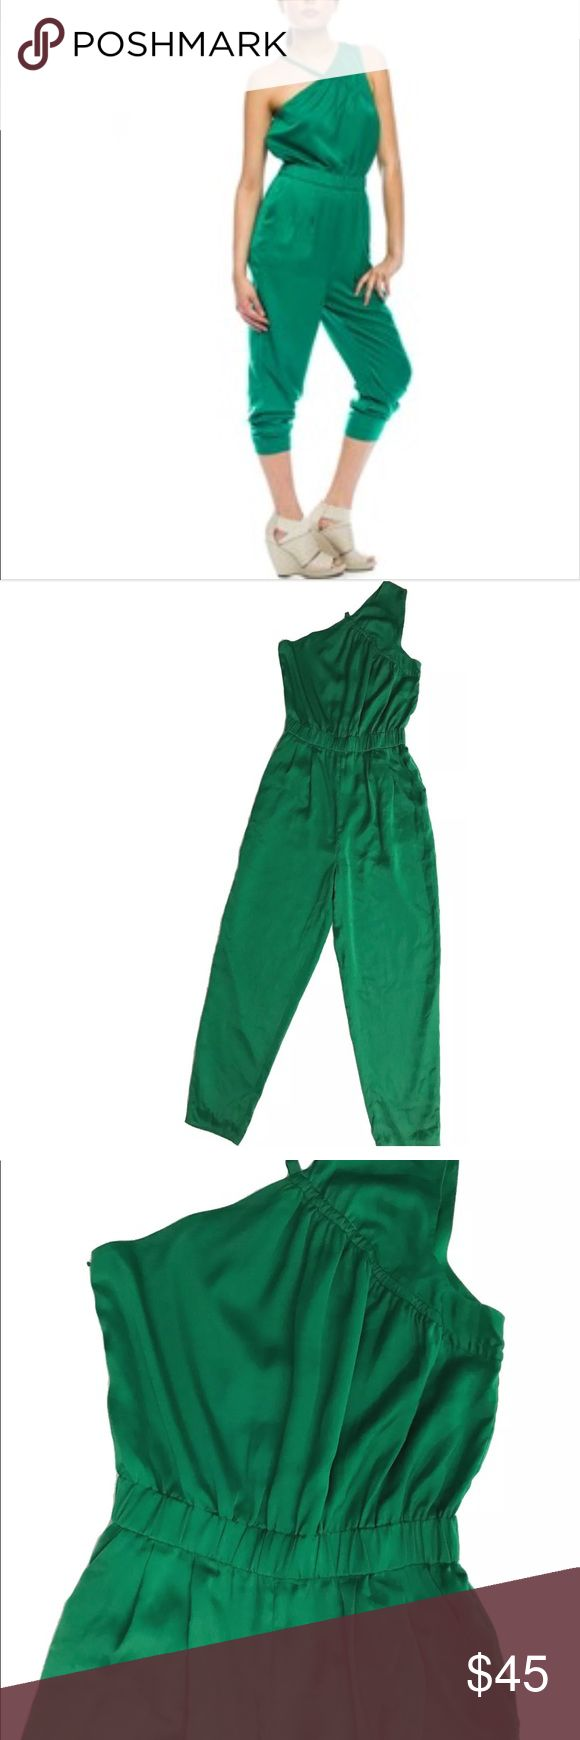 Armani Exchange size 0 green jumpsuit Excellent condition  Unique and trendy Silky like material  Polyester  All seasons garment Please look at pictures for details. A/X Armani Exchange Pants Jumpsuits & Rompers